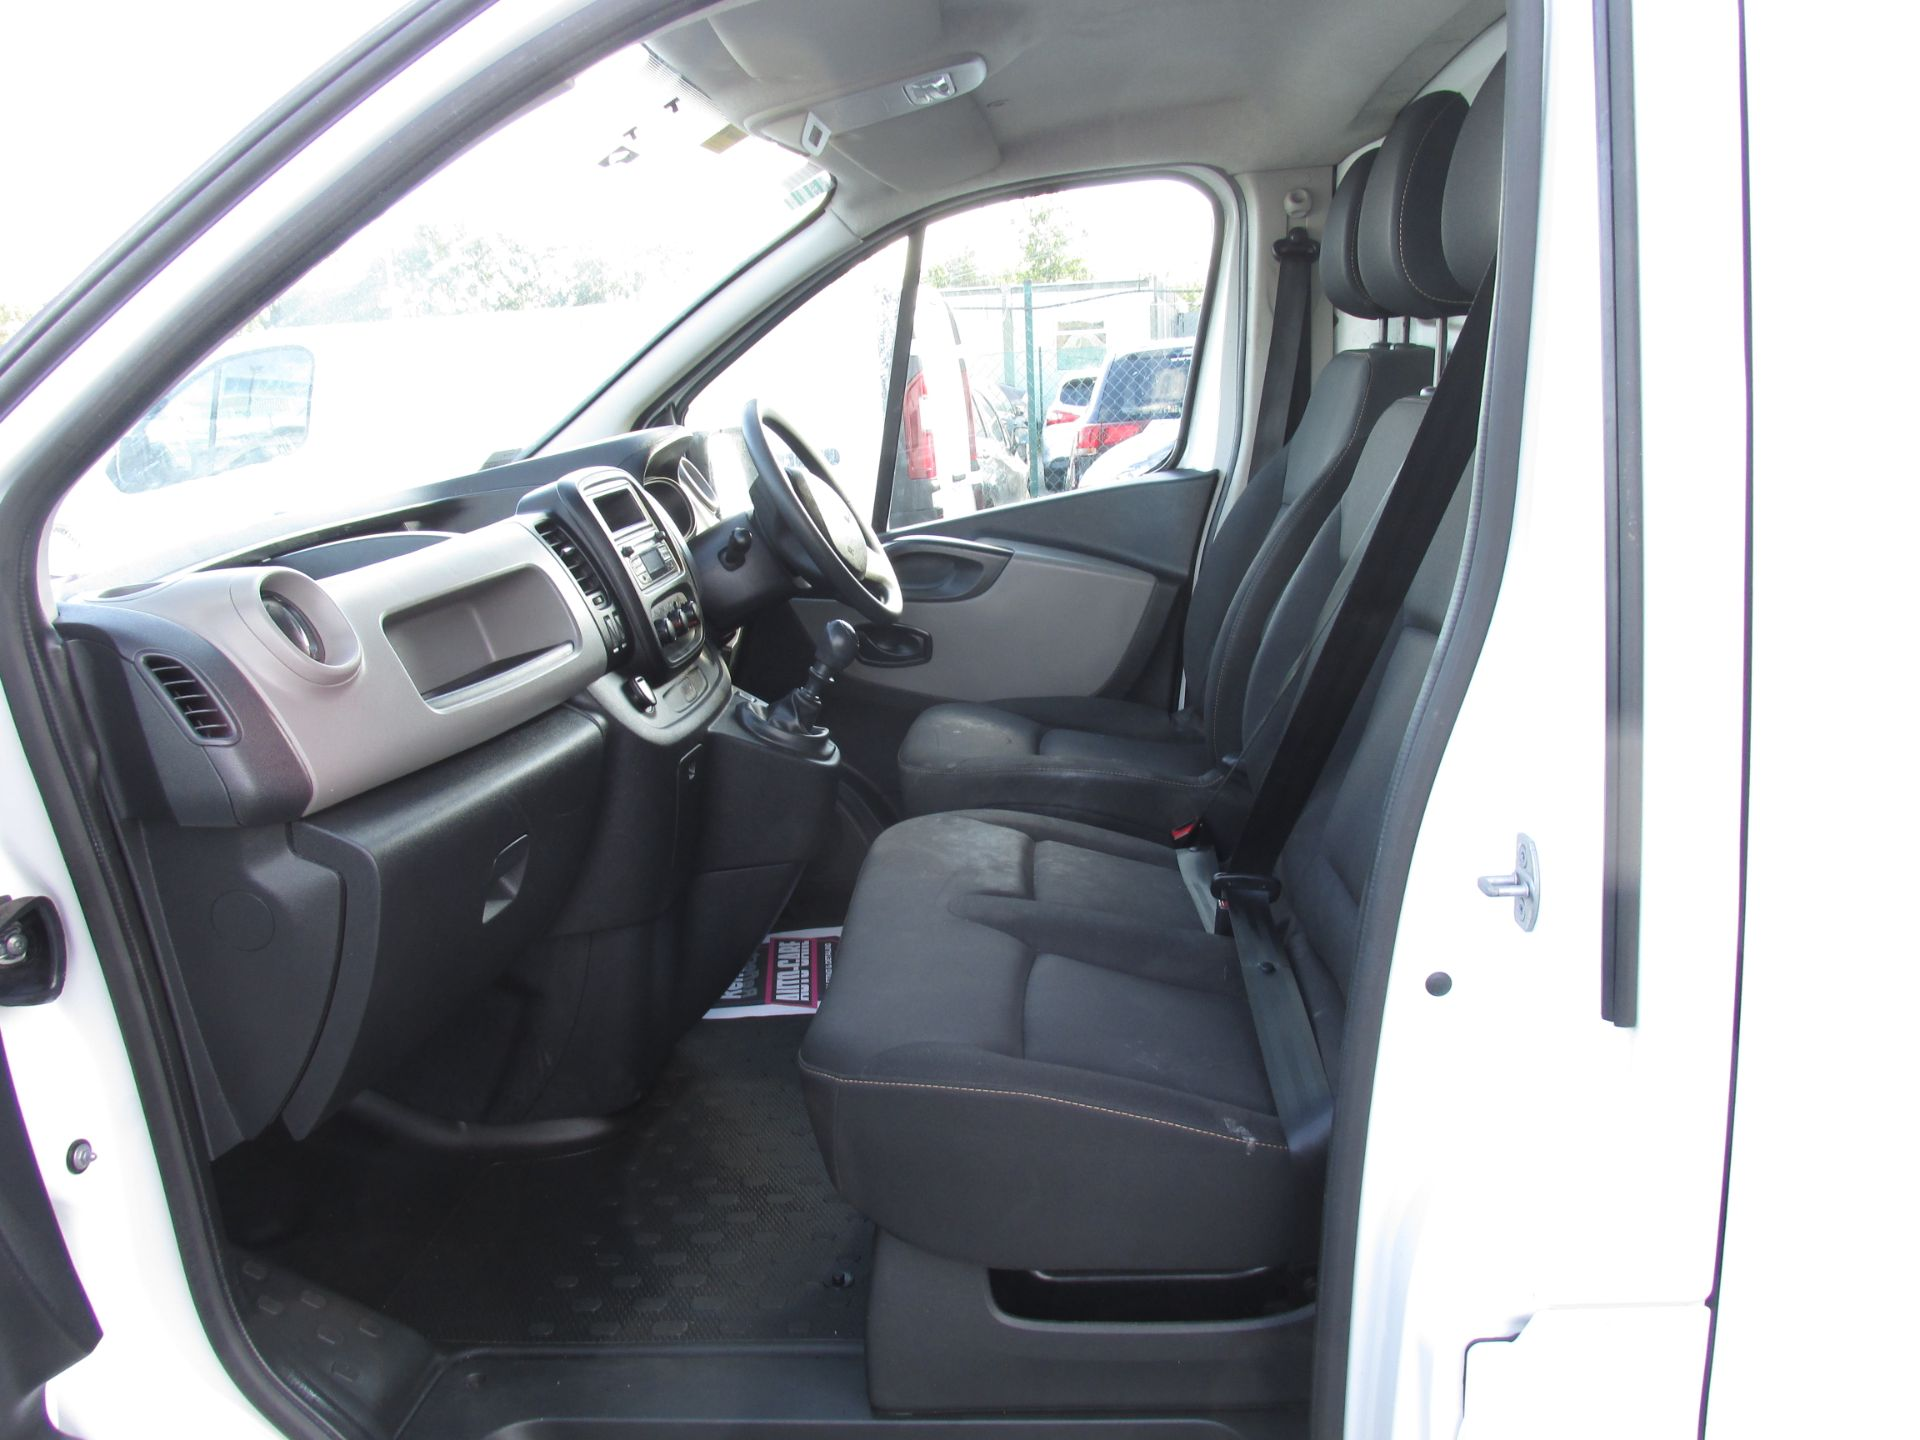 2017 Renault Trafic LL29 DCI 120 Business 3DR (171D25718) Image 11